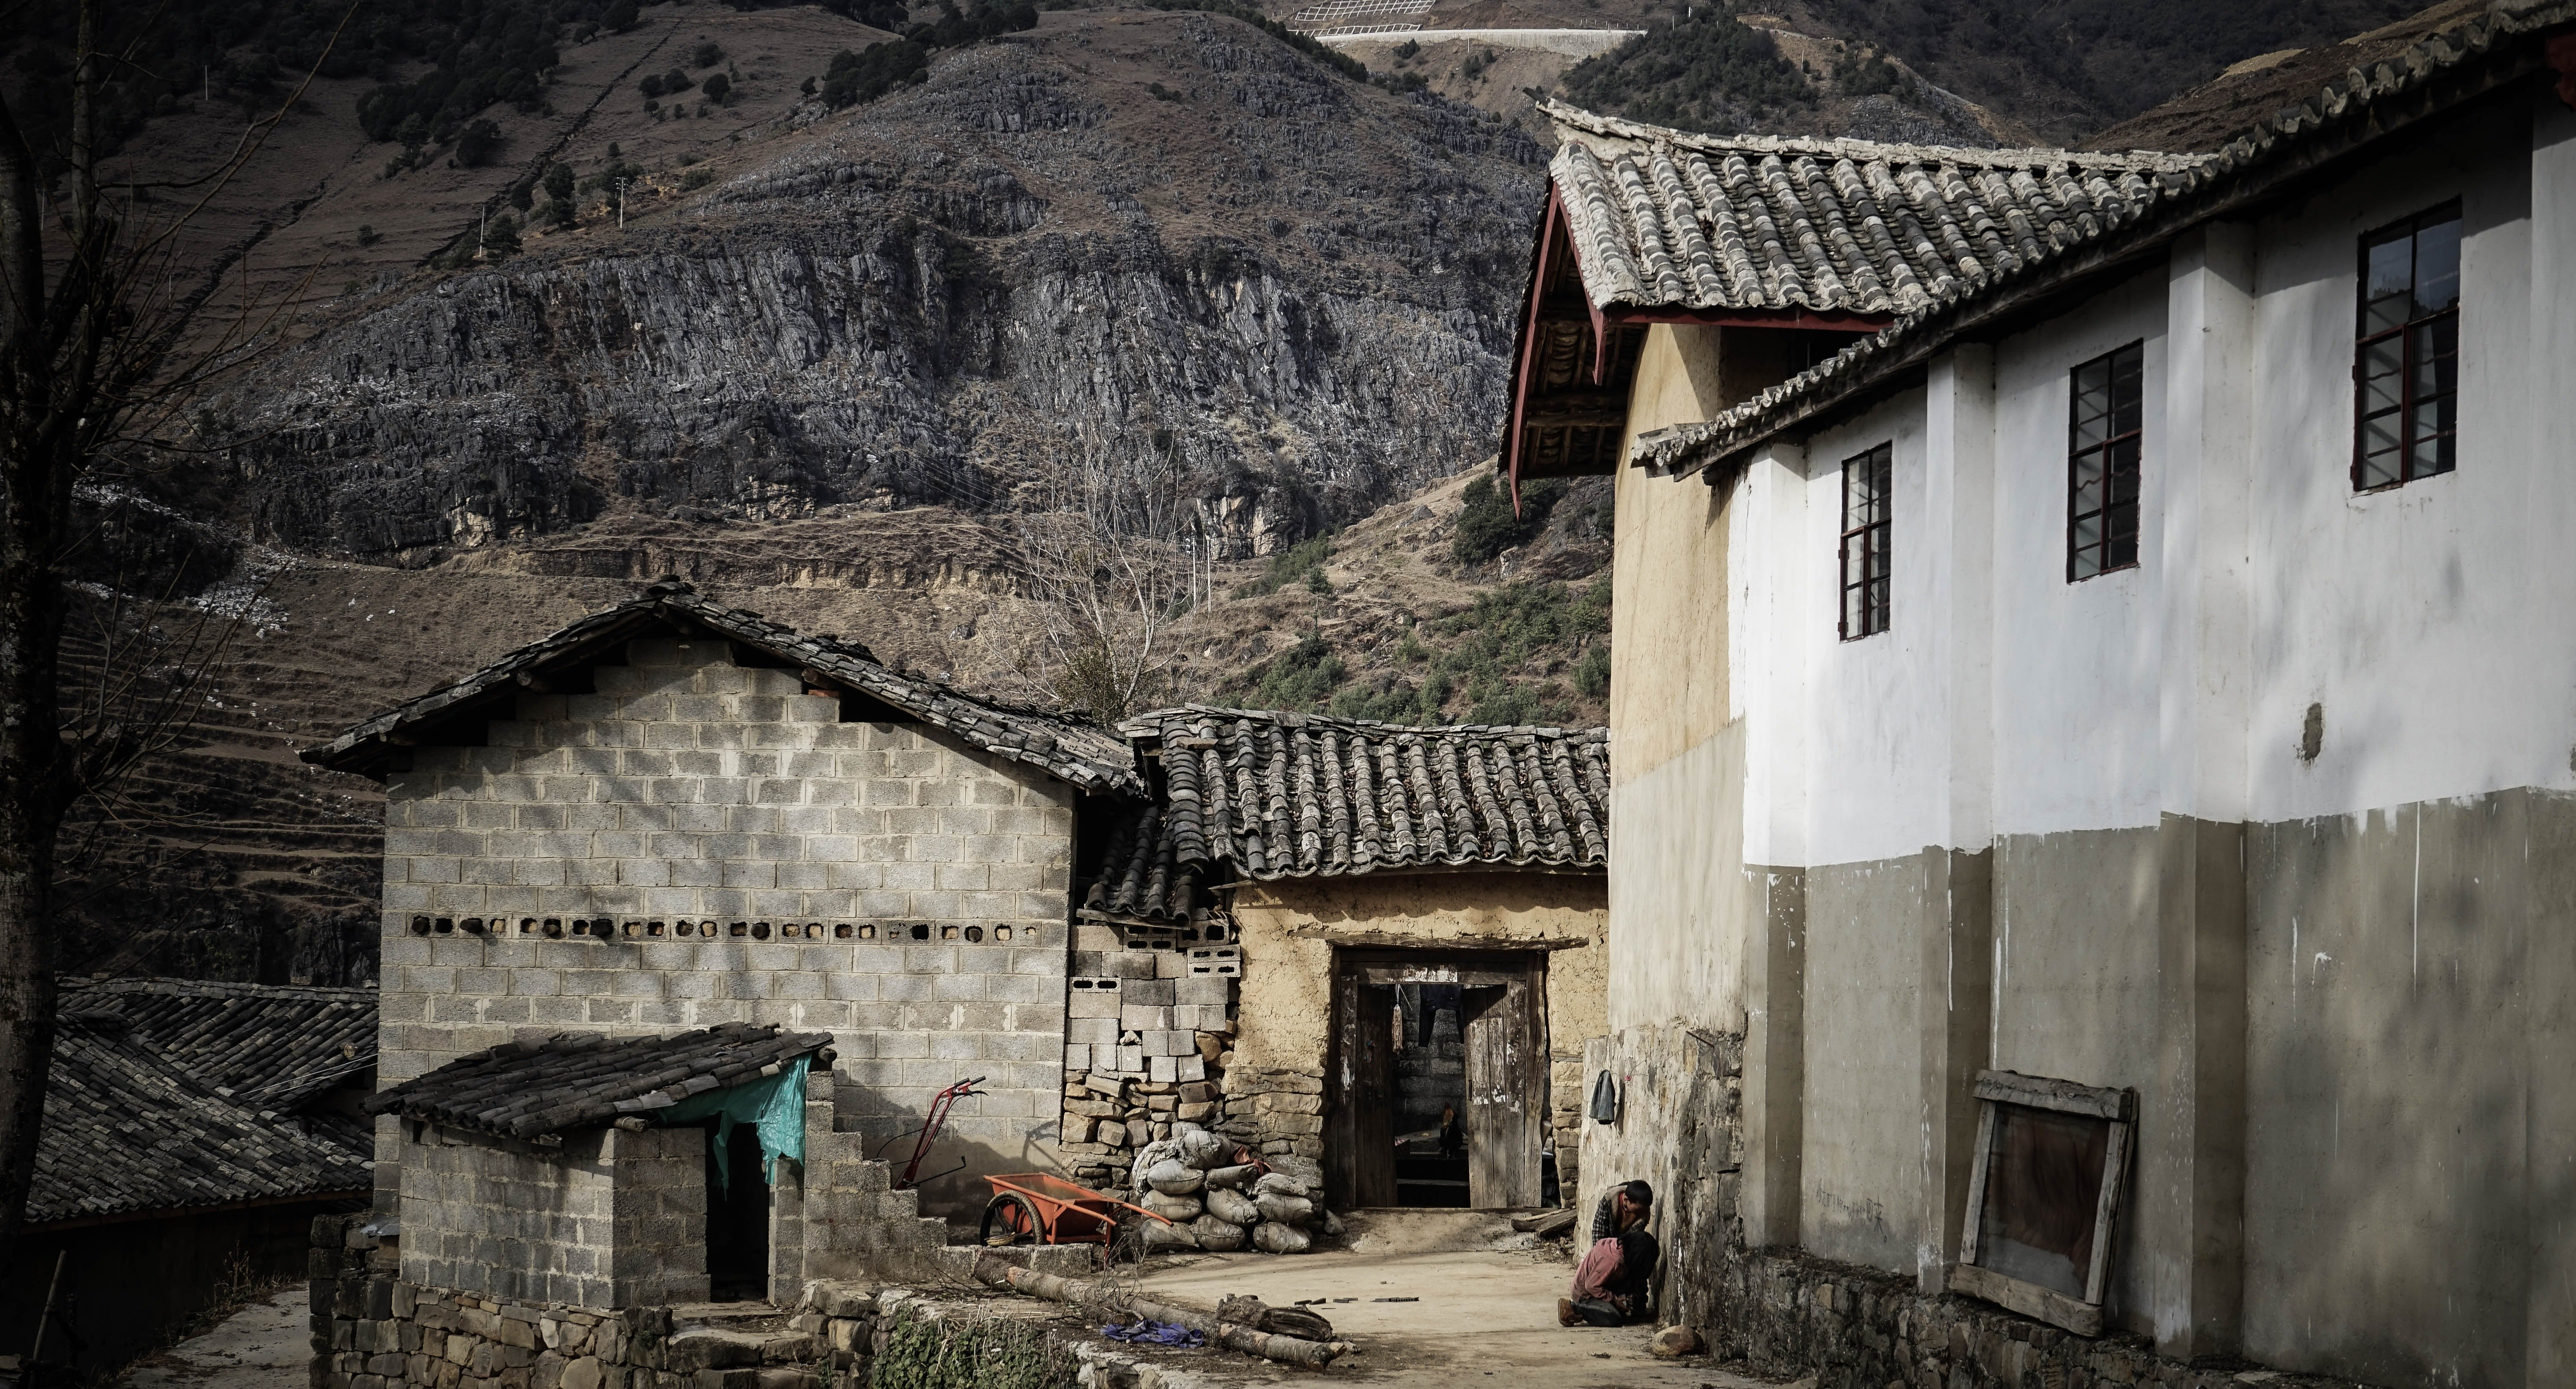 Pictured - A village near a mountain cliff   Source: Pexels